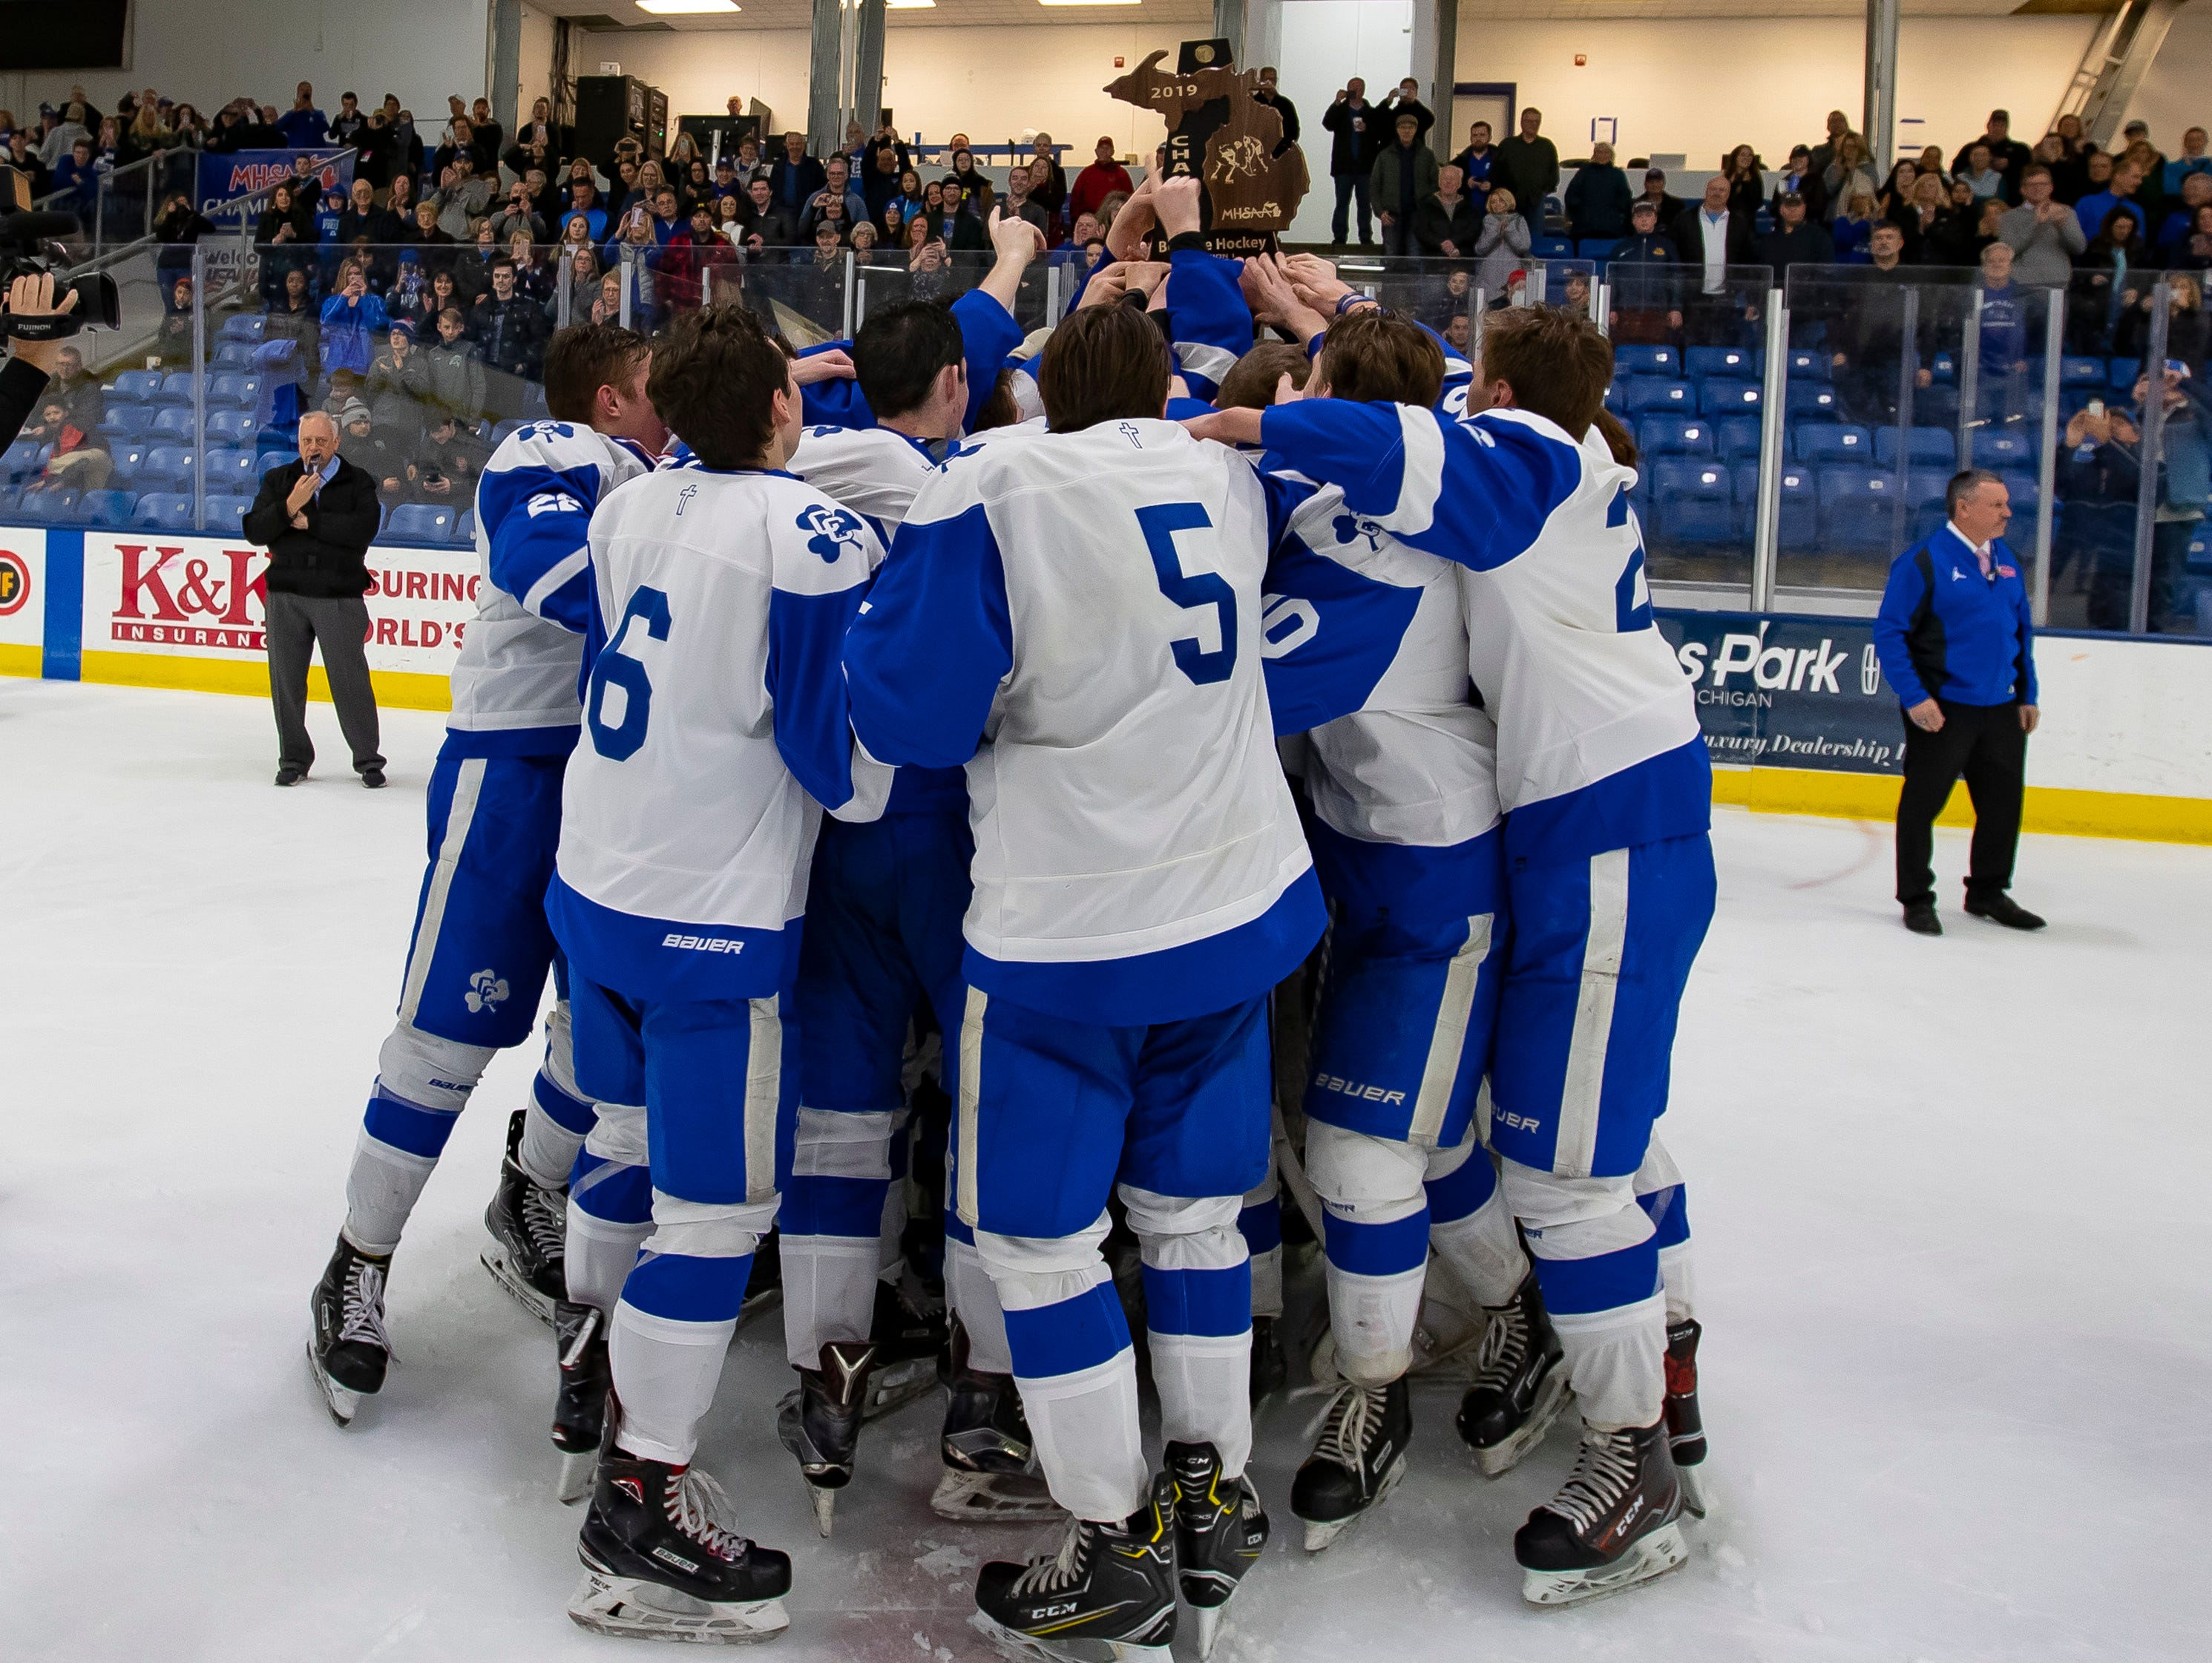 Catholic Central players receive their trophy after defeating Saginaw Heritage 3-1 to win the MHSAA Division 1 Championship.